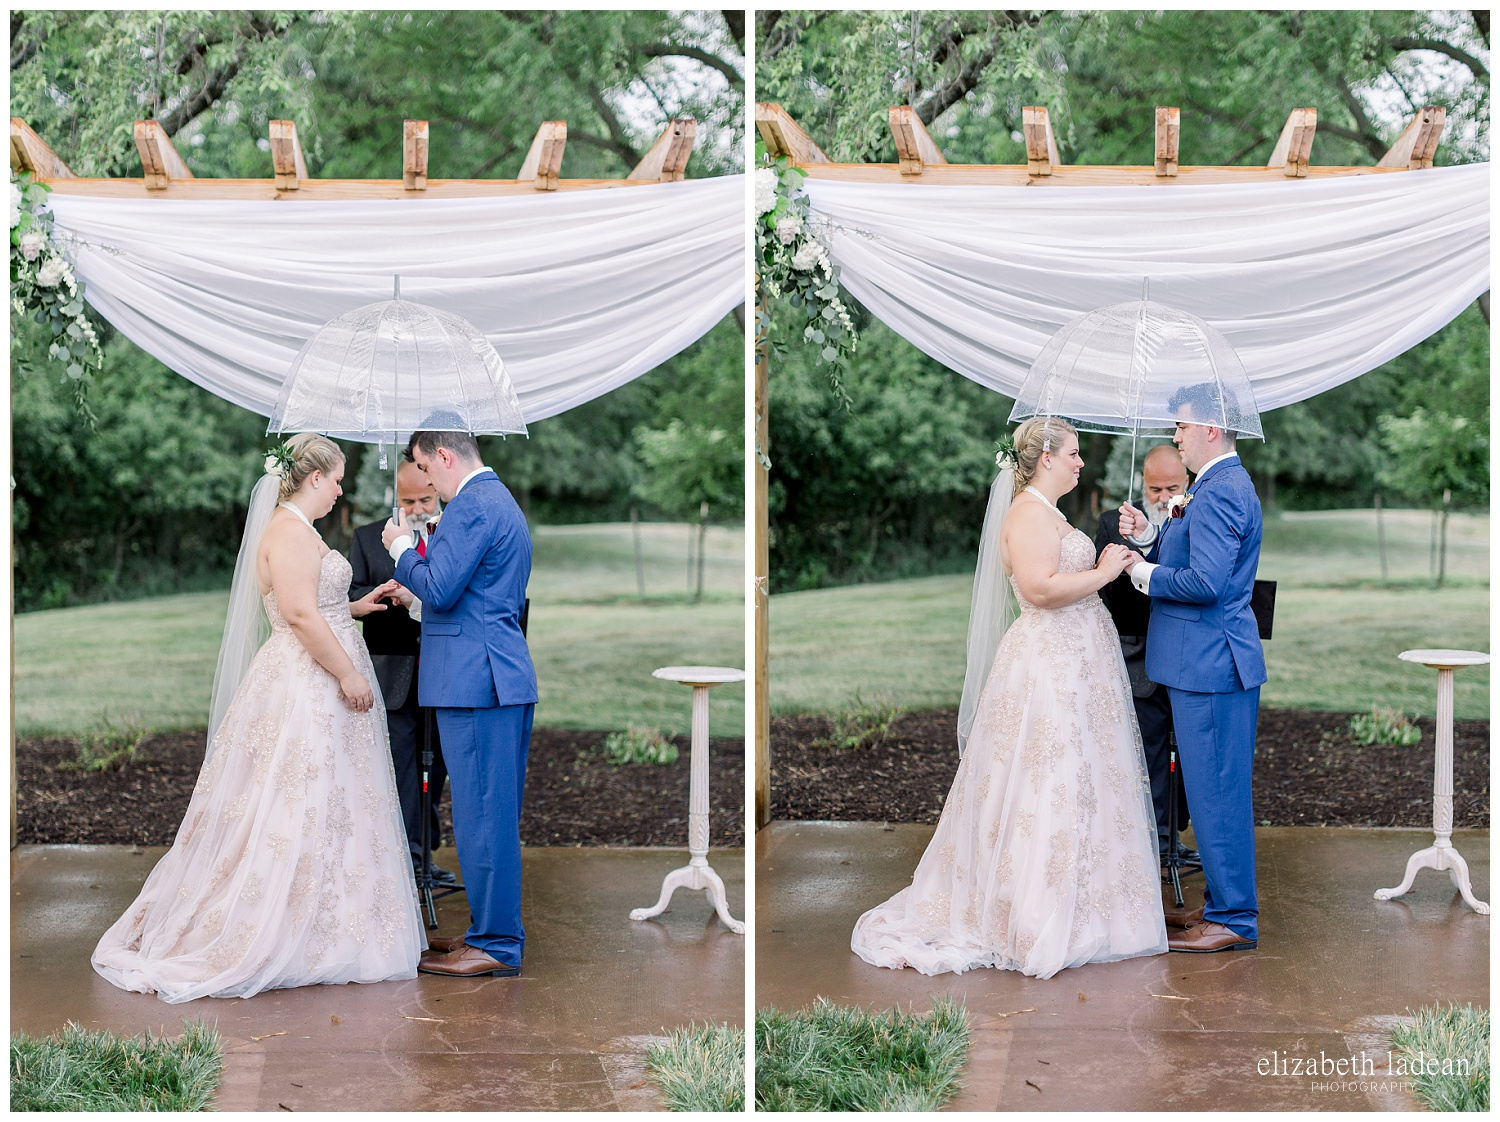 Rainy-KC-Wedding-Legacy-at-Green-Hills-H+J-0630-elizabeth-ladean-photography-photo-_8913.jpg